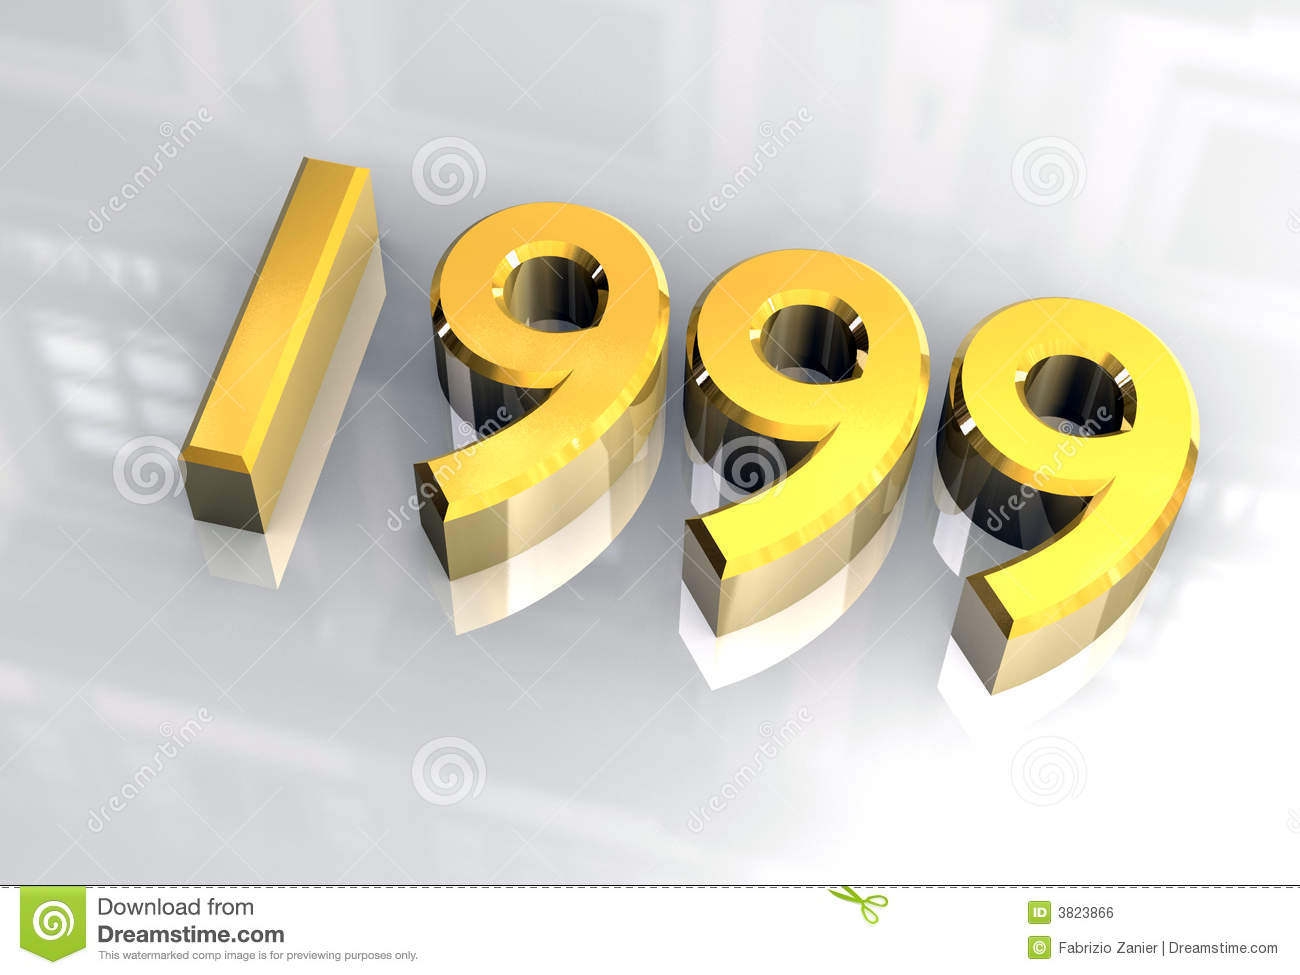 1999 Stock Illustrations – 97 1999 Stock Illustrations, Vectors & Clipart -  Dreamstime